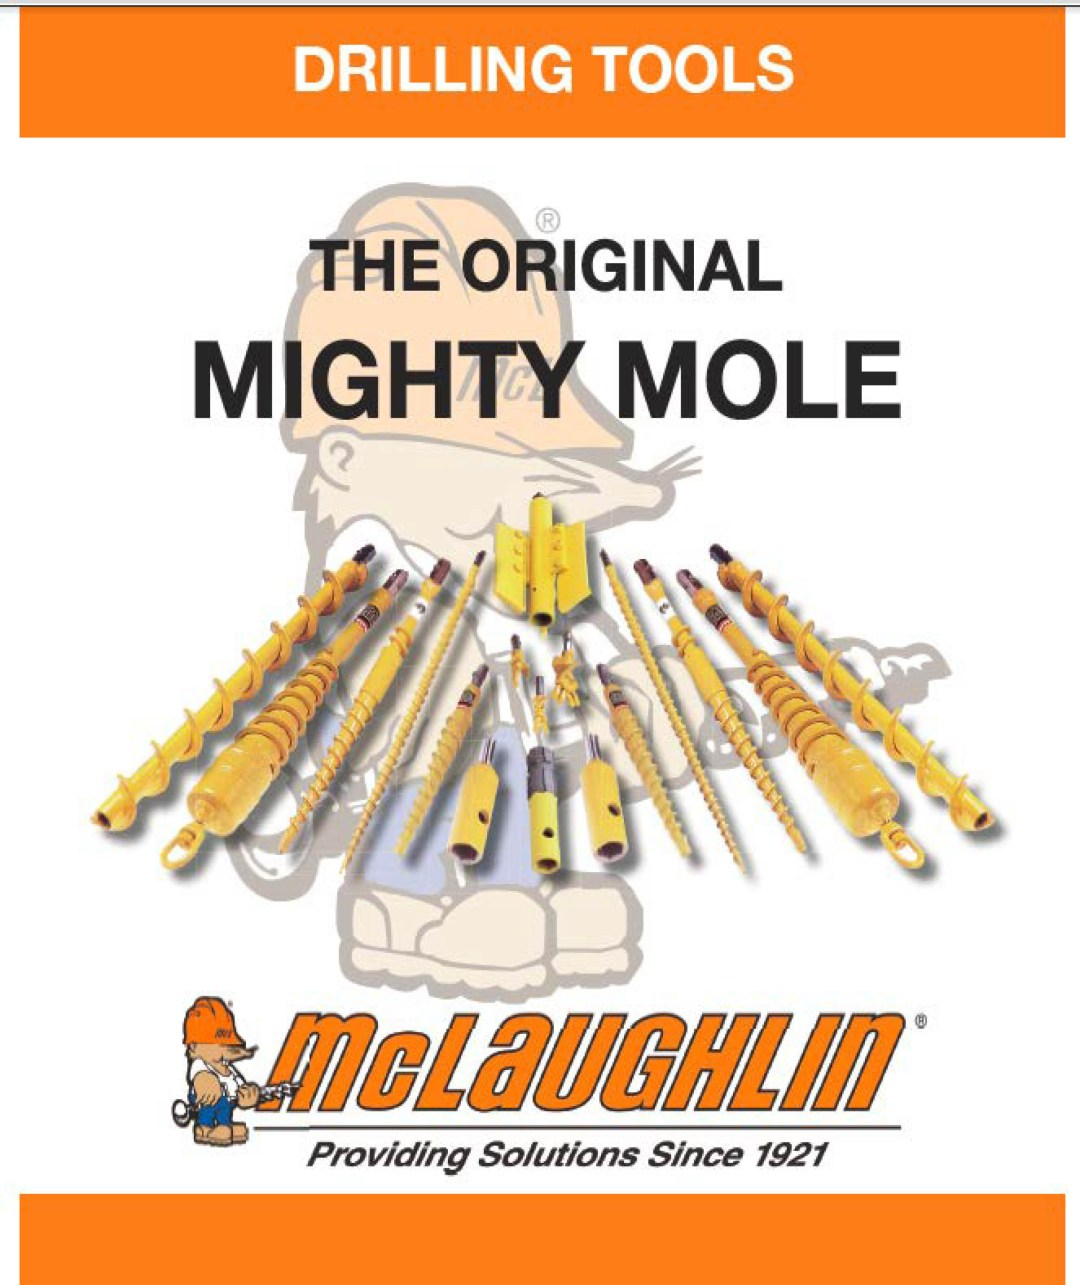 Mighty Mole Drilling Tool catalog